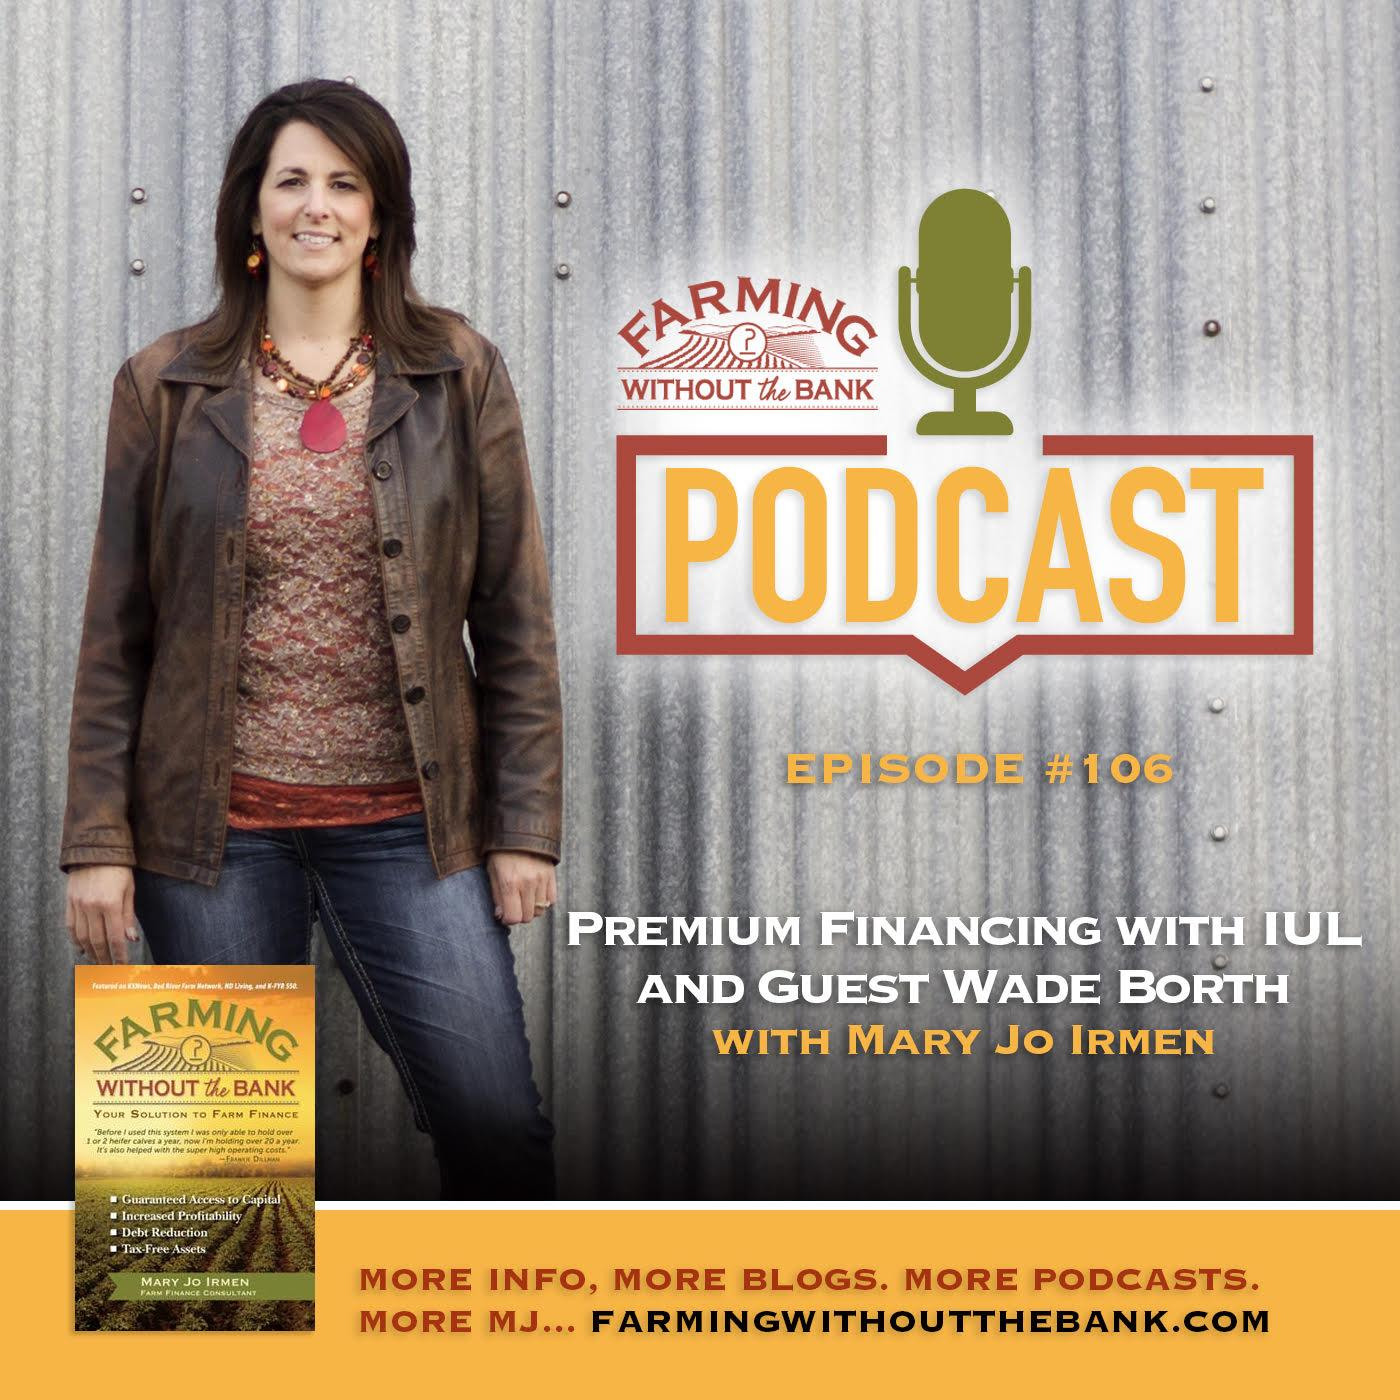 Ep. 106 - Premium Financing with IUL and Guest Wade Borth show art